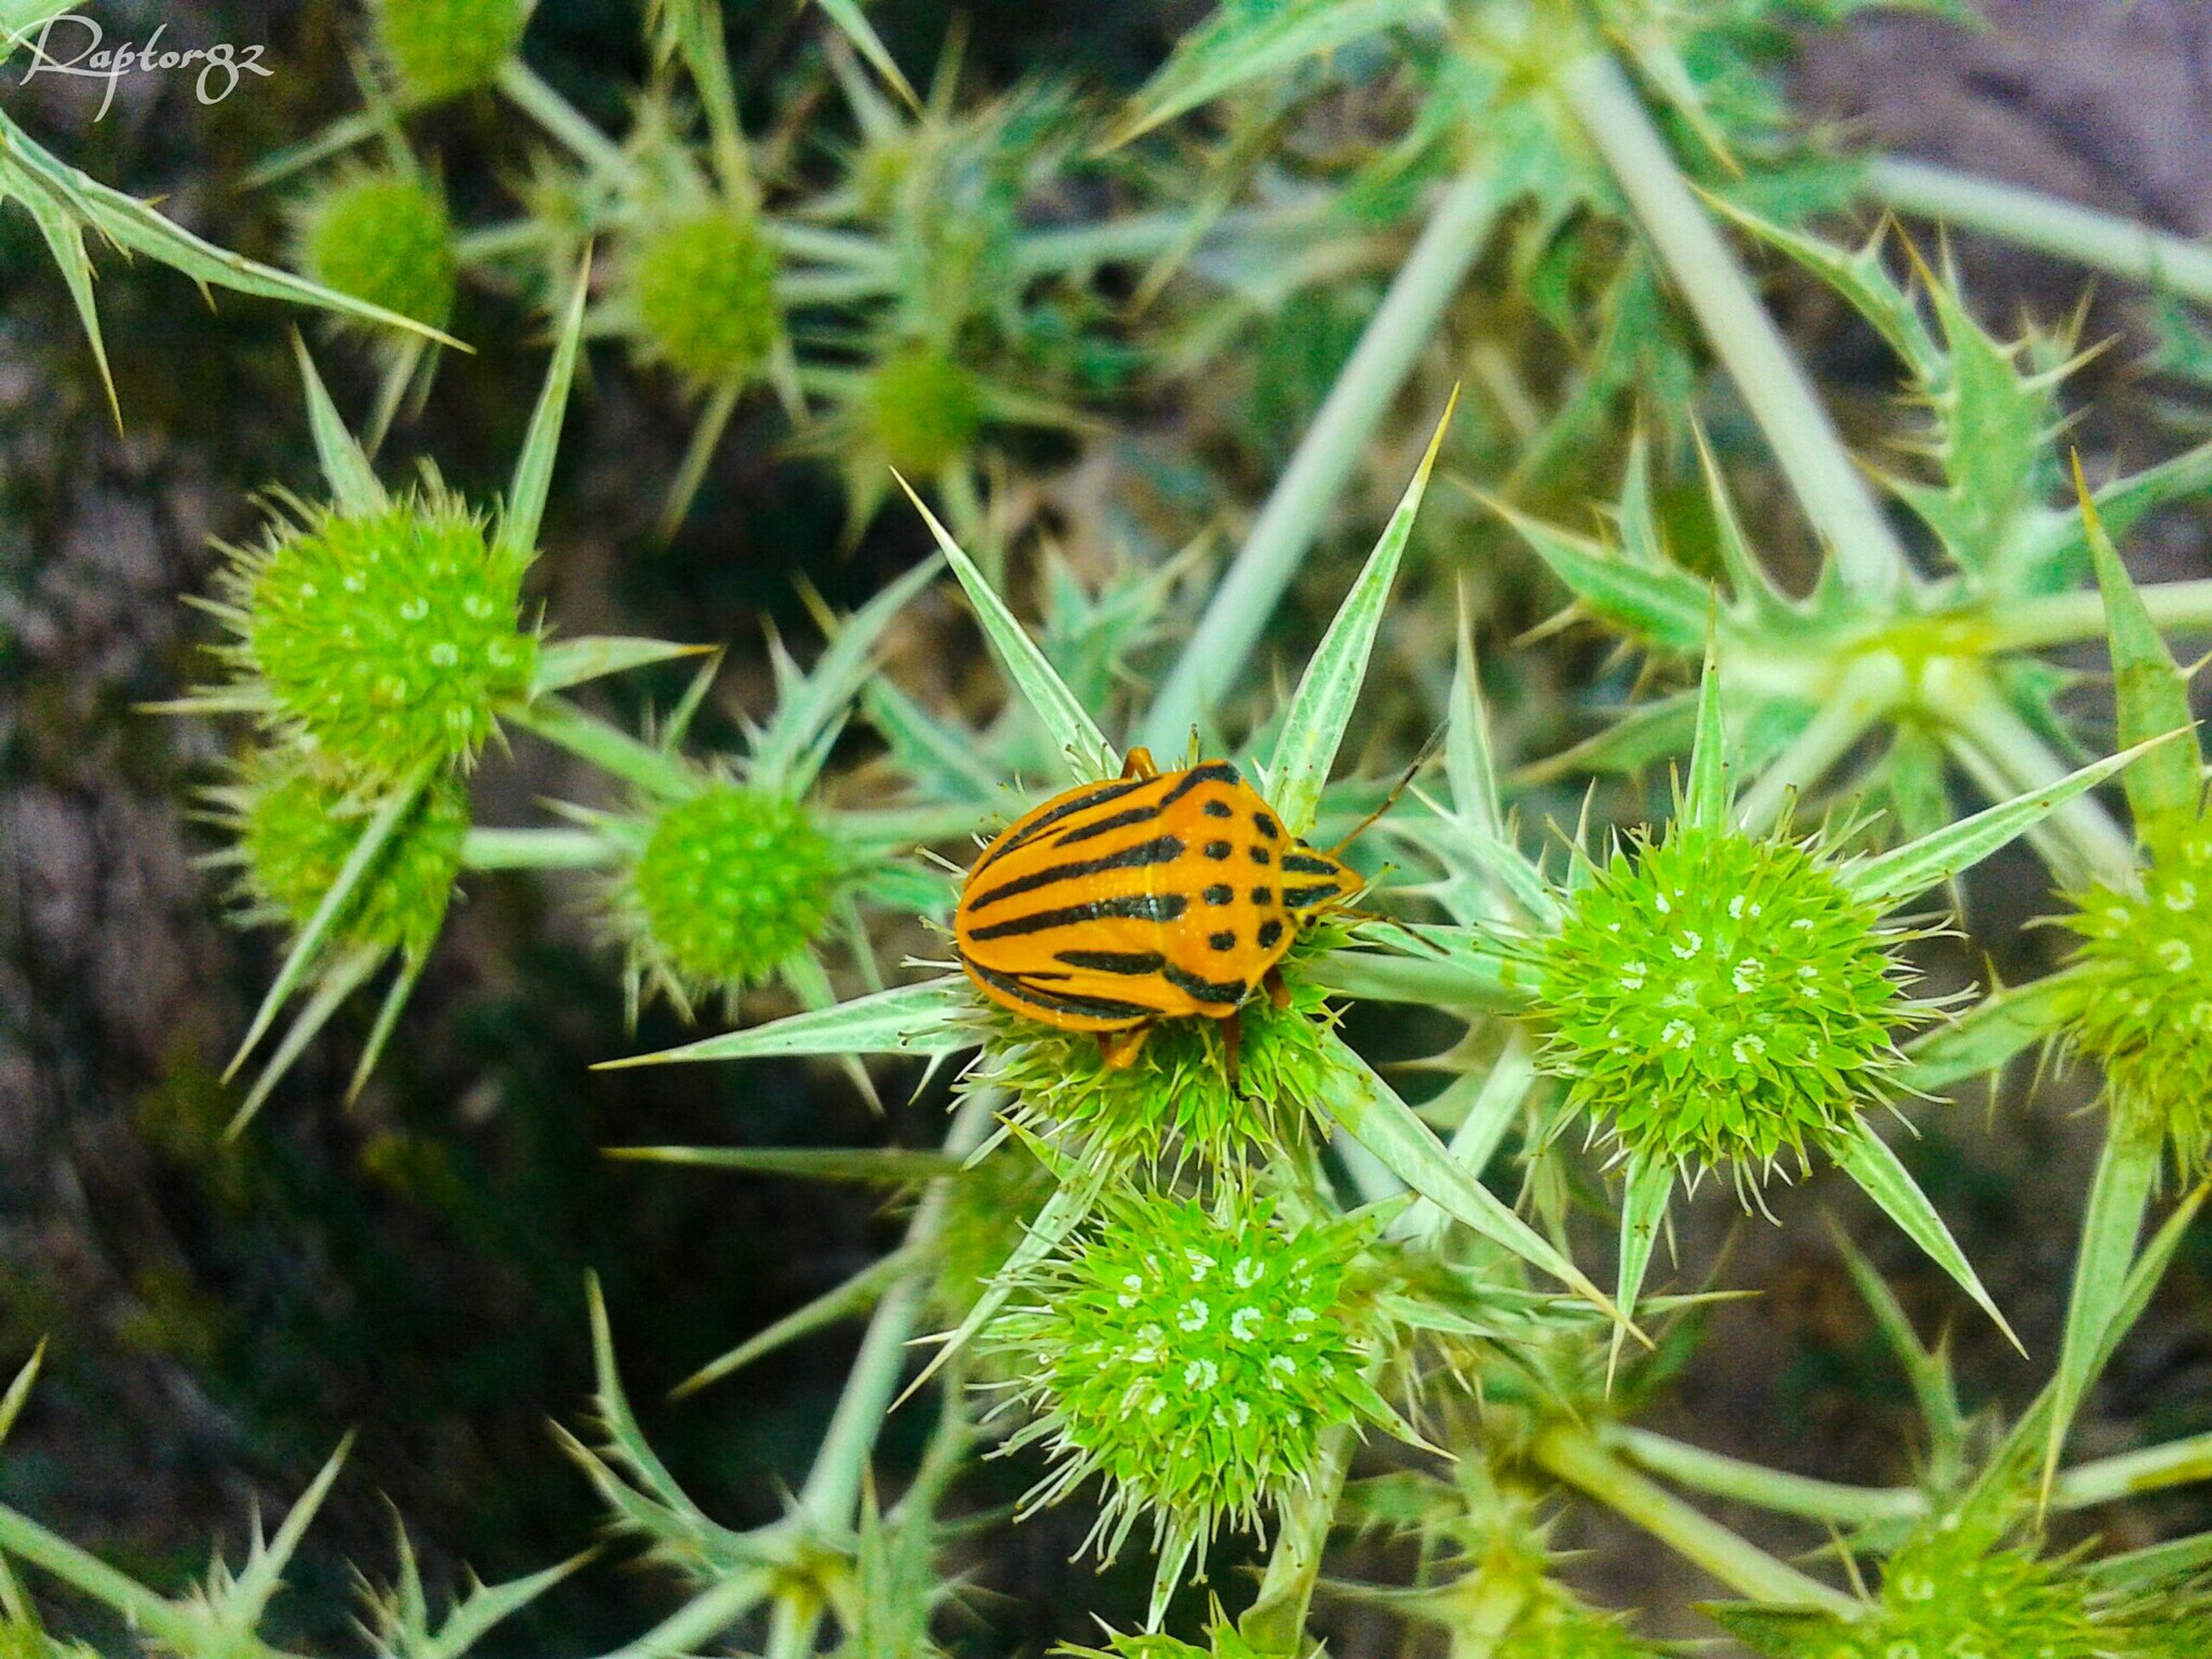 insect, animals in the wild, one animal, animal themes, wildlife, flower, butterfly - insect, plant, growth, fragility, nature, close-up, high angle view, beauty in nature, butterfly, focus on foreground, green color, freshness, leaf, pollination